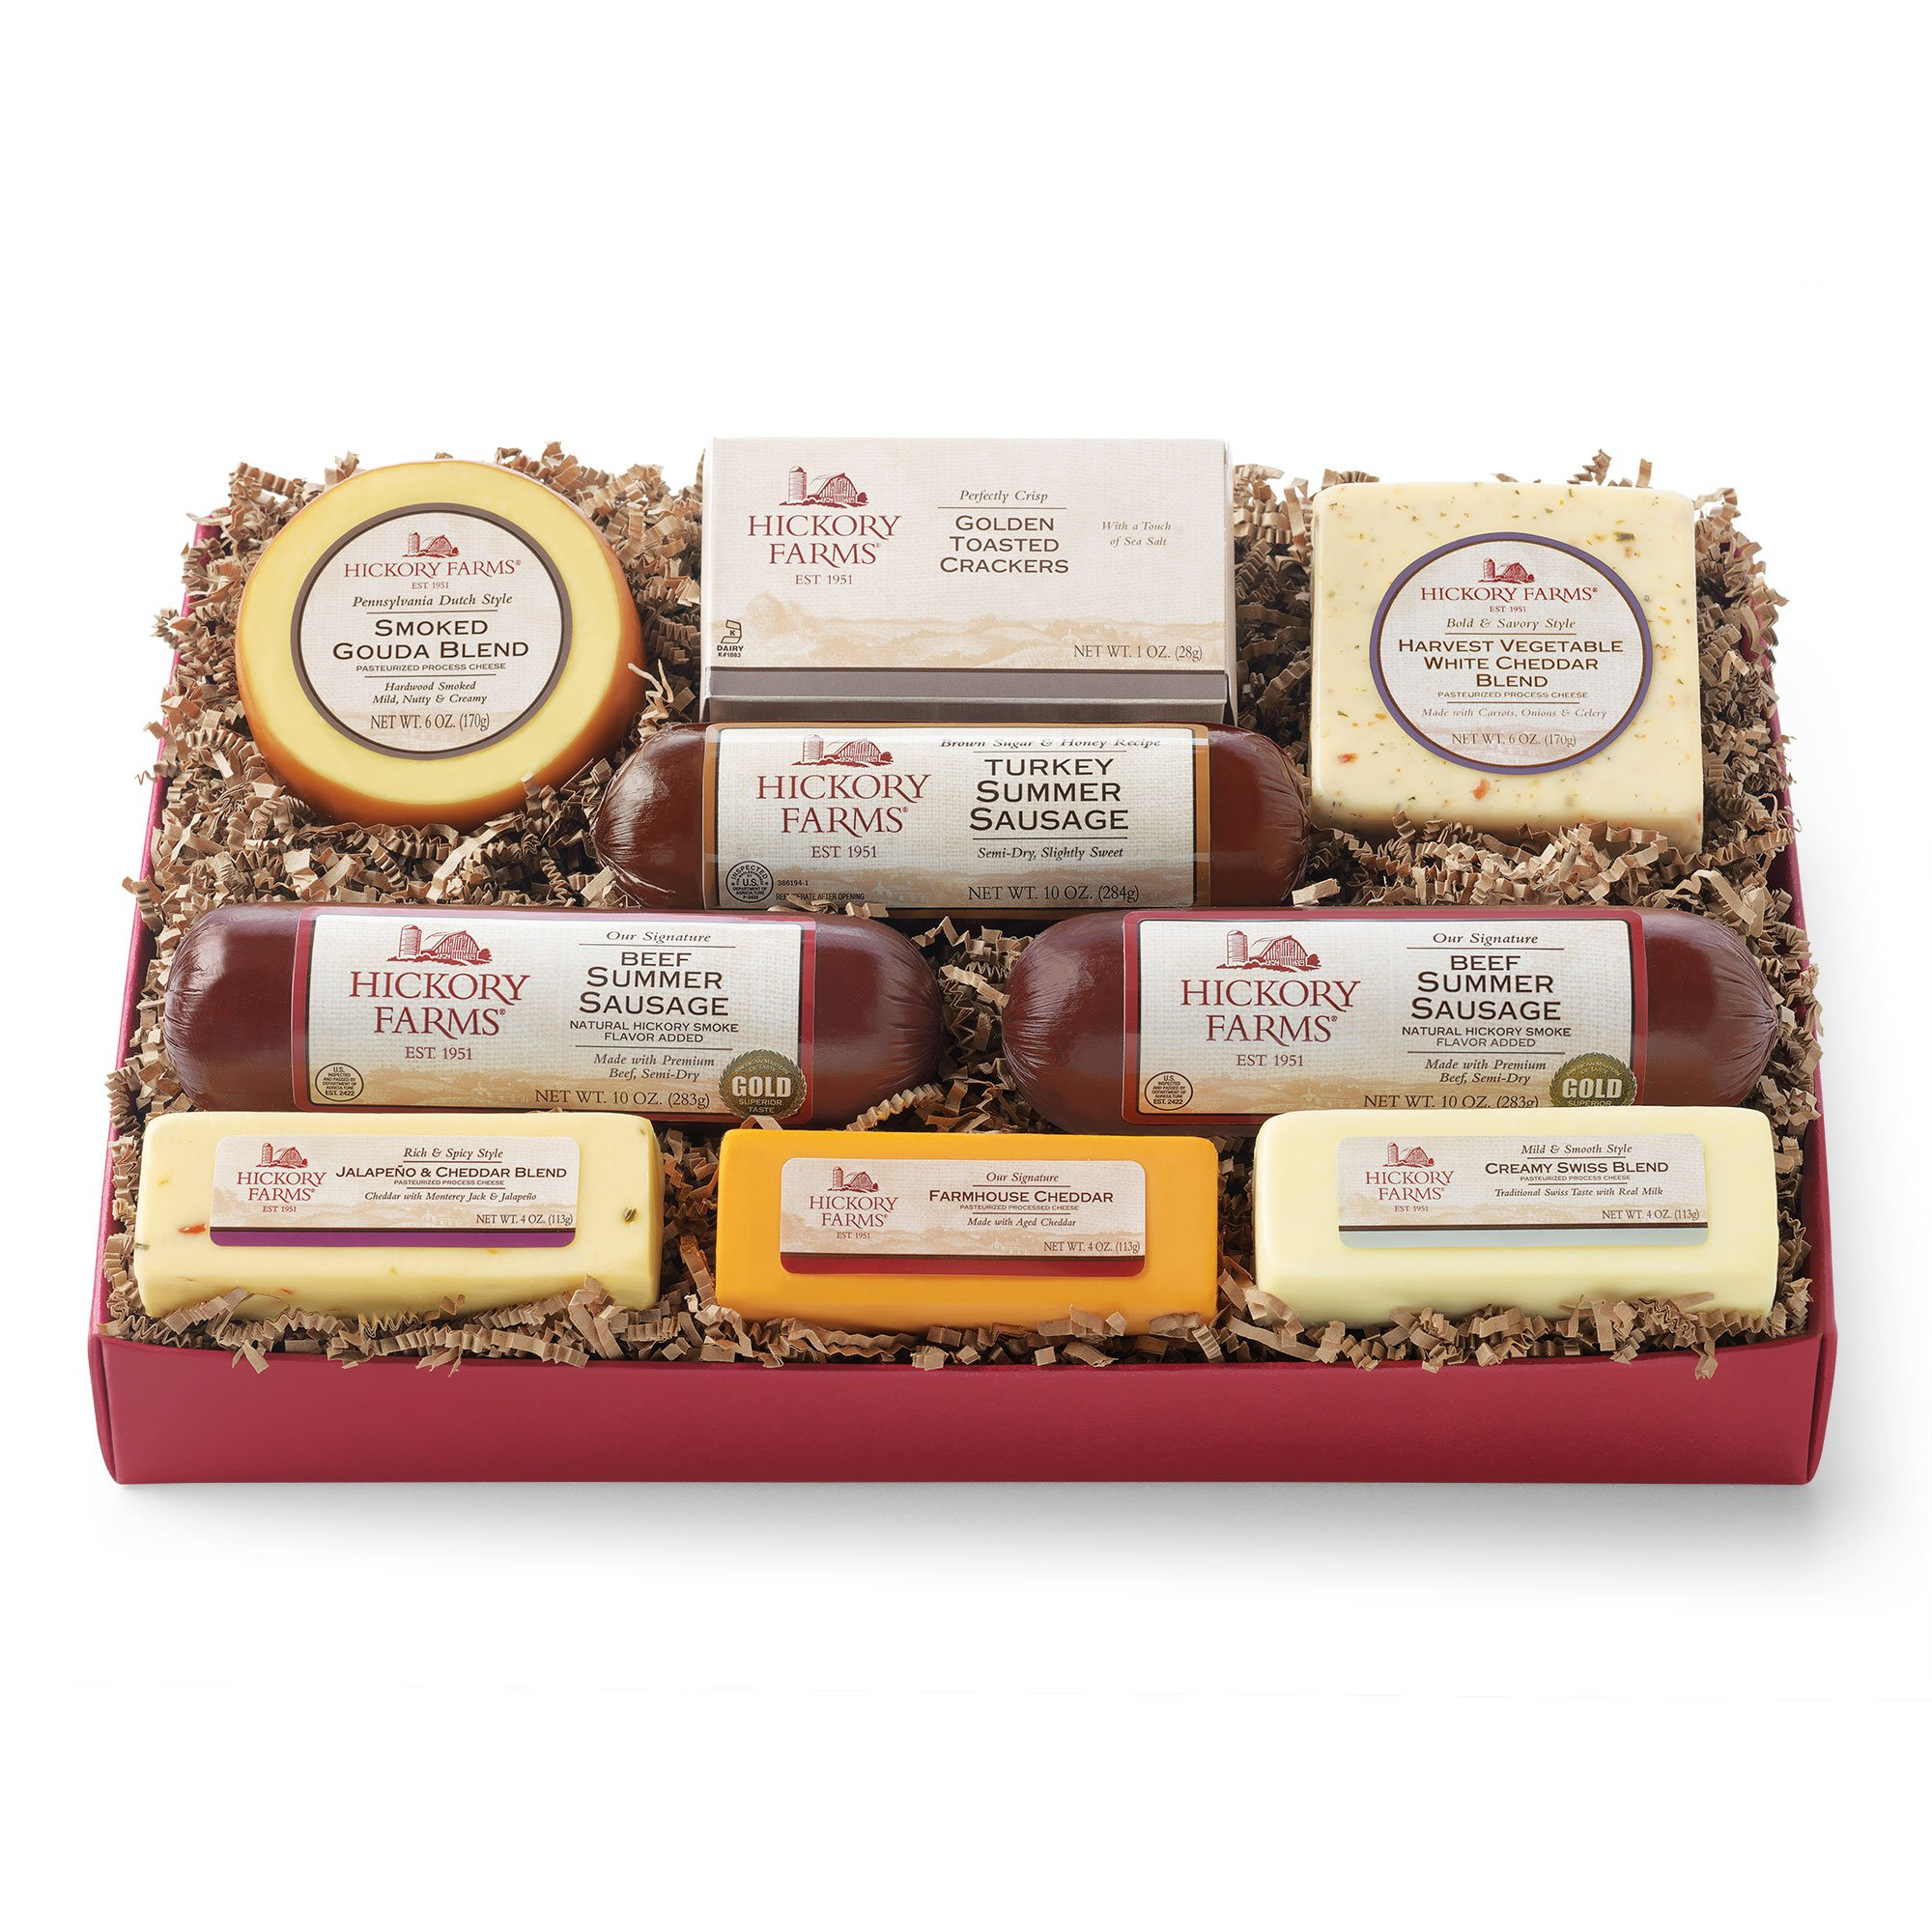 Hickory Farms Celebration Collection: Amazon.com: Grocery & Gourmet Food